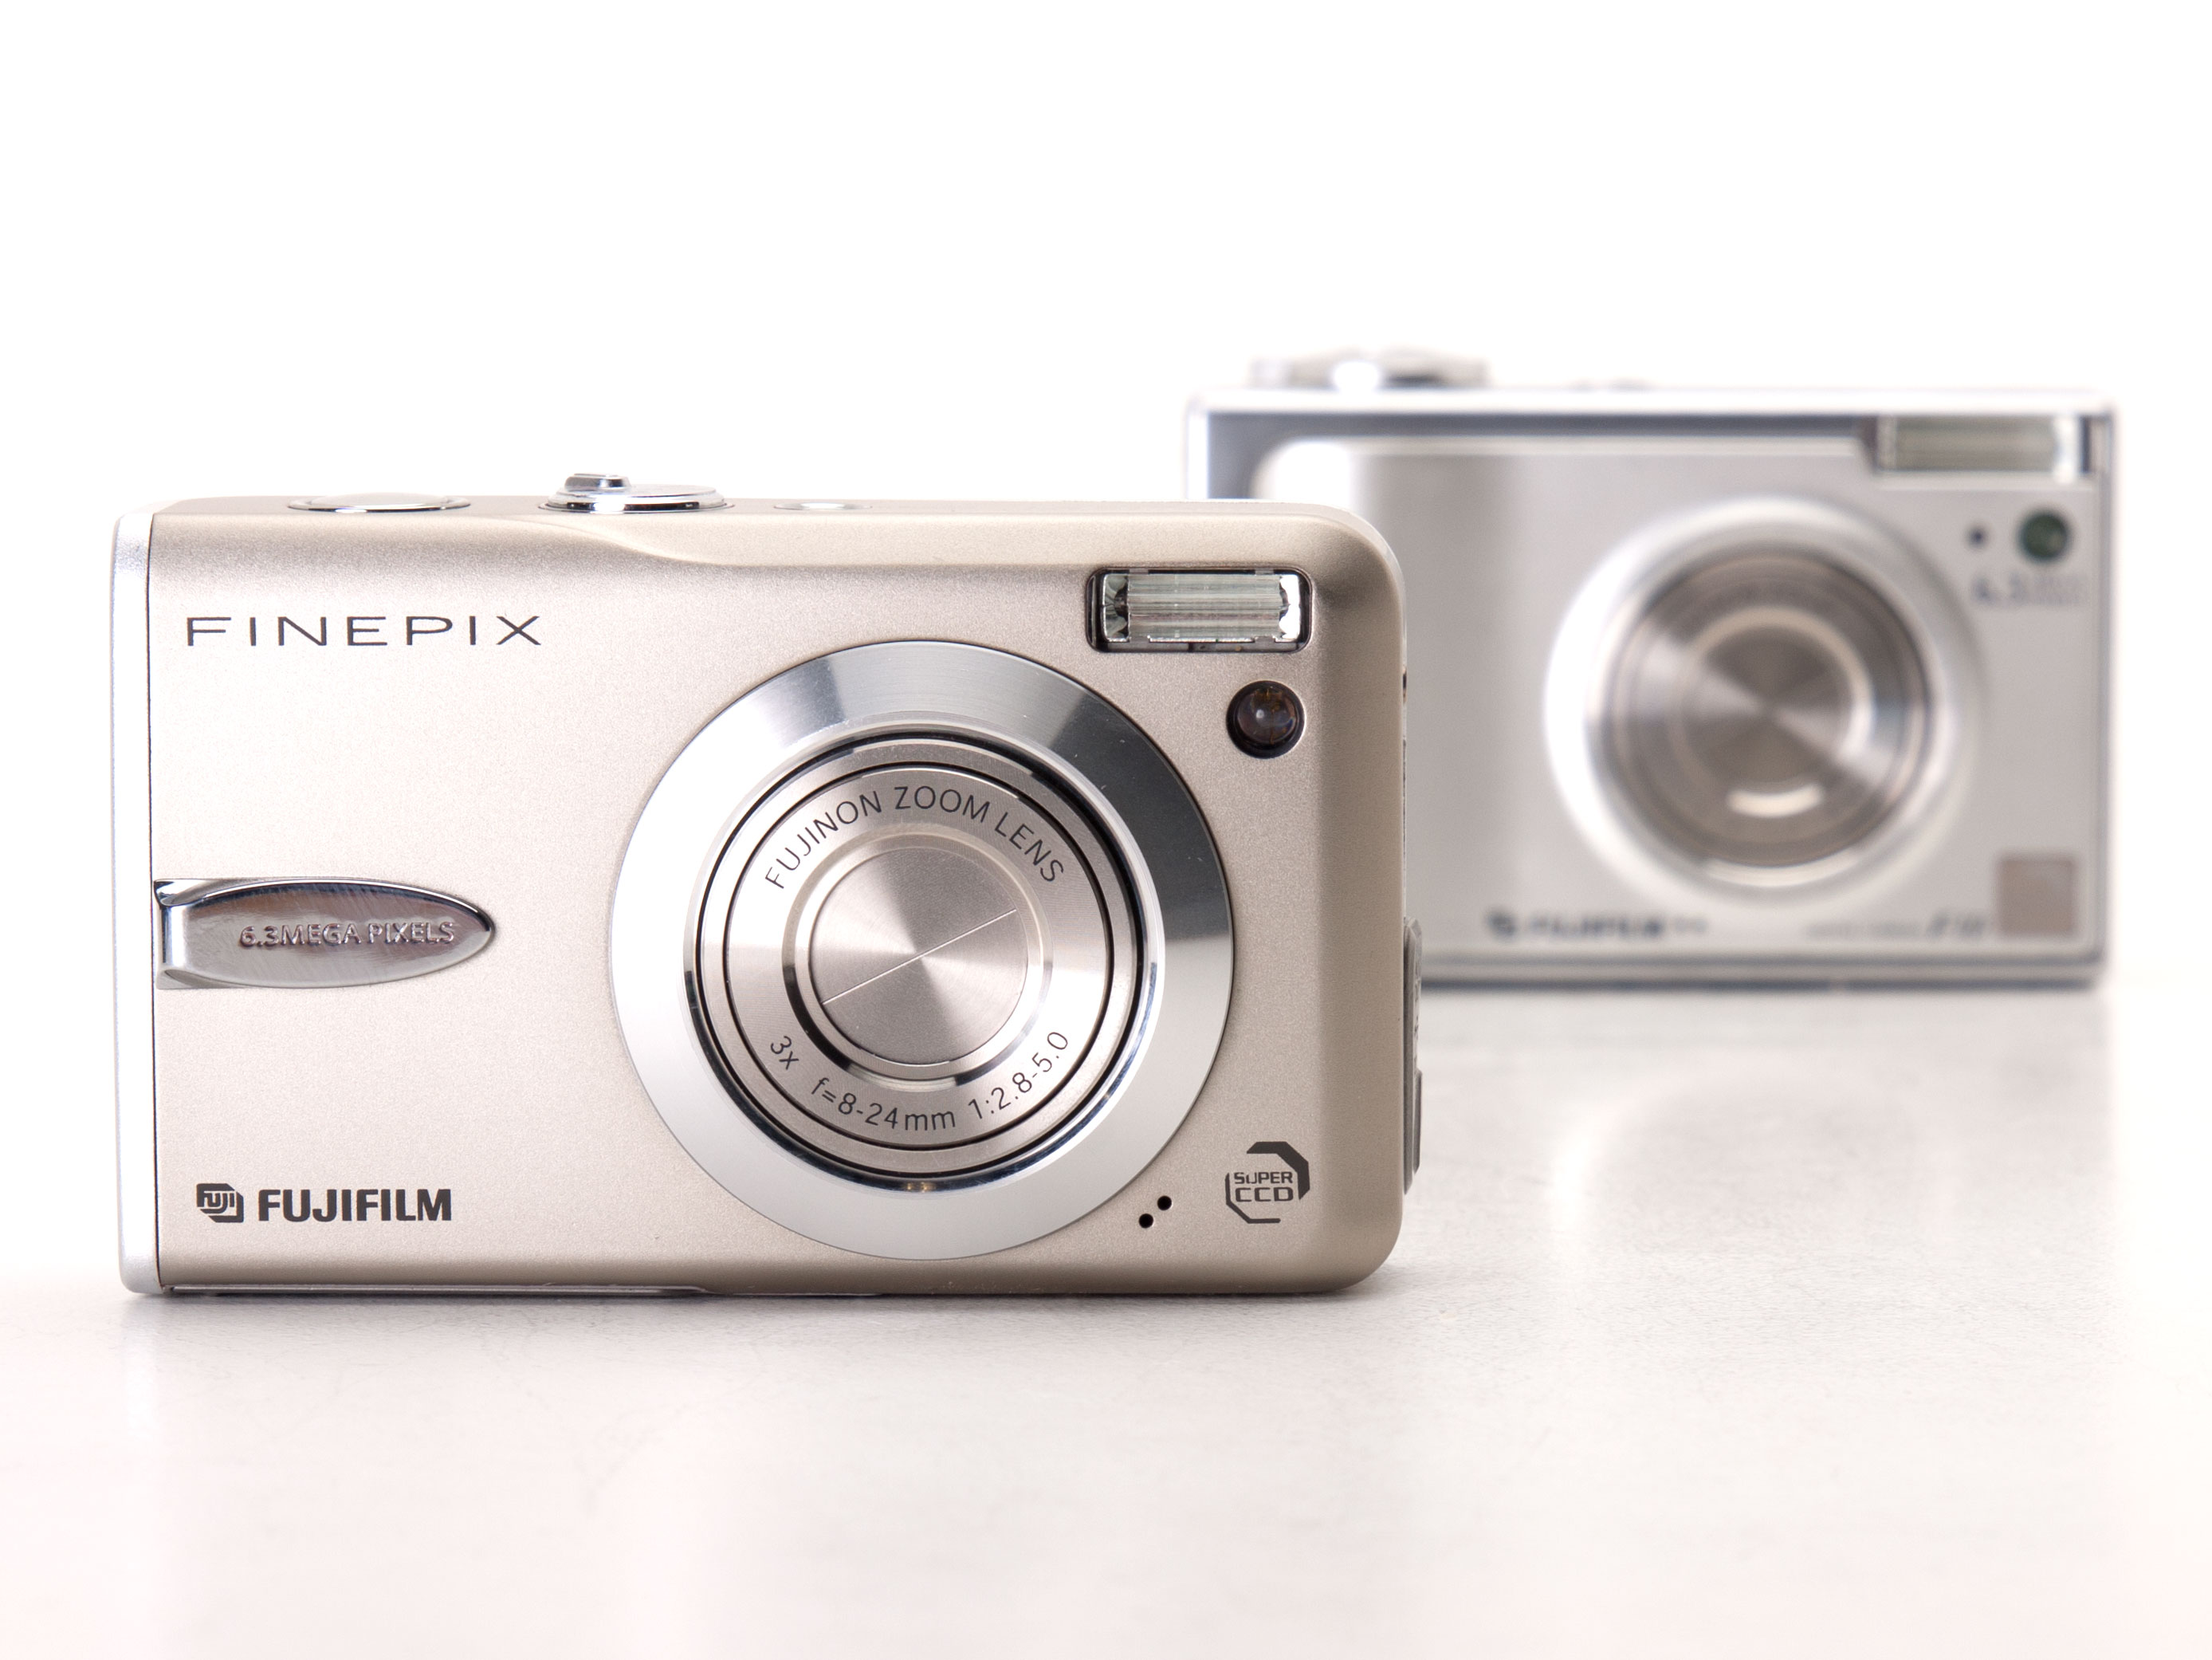 The FinePix F10 was eventually succeeded by the F30 - considered by many to  be one of the few real 'classics' of the compact point-and-shoot era.